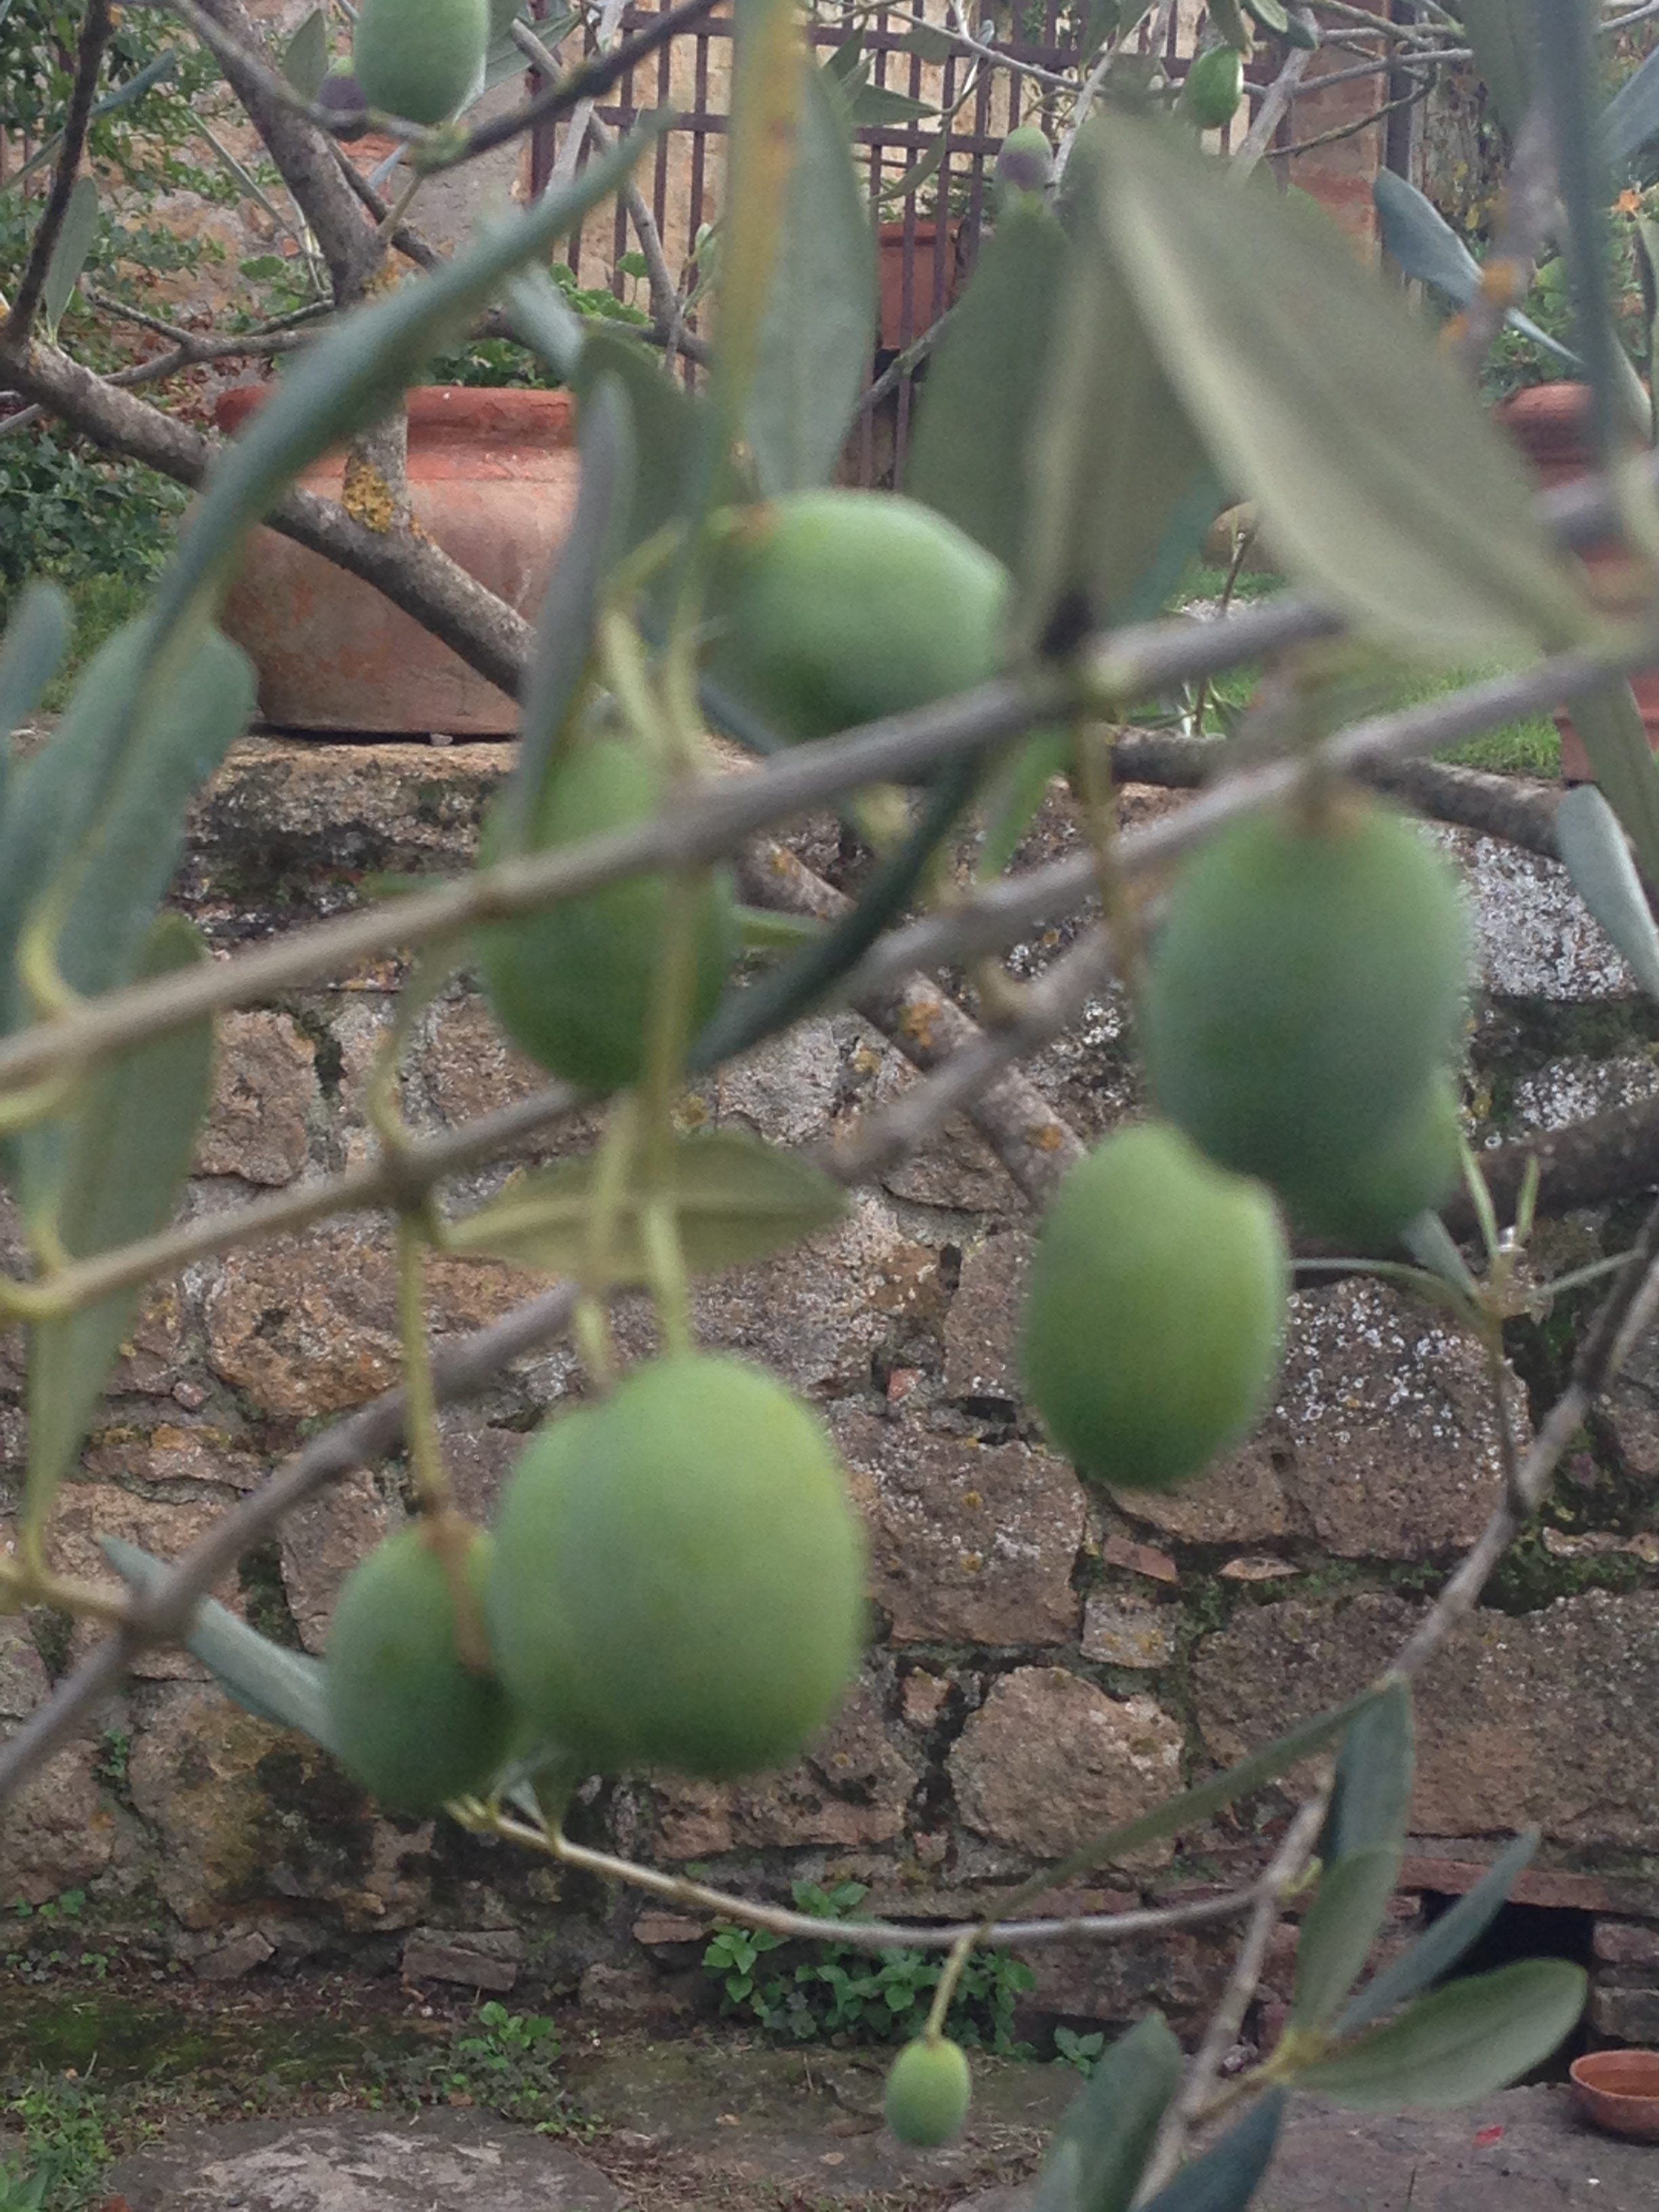 Olives not quite ready to harvest